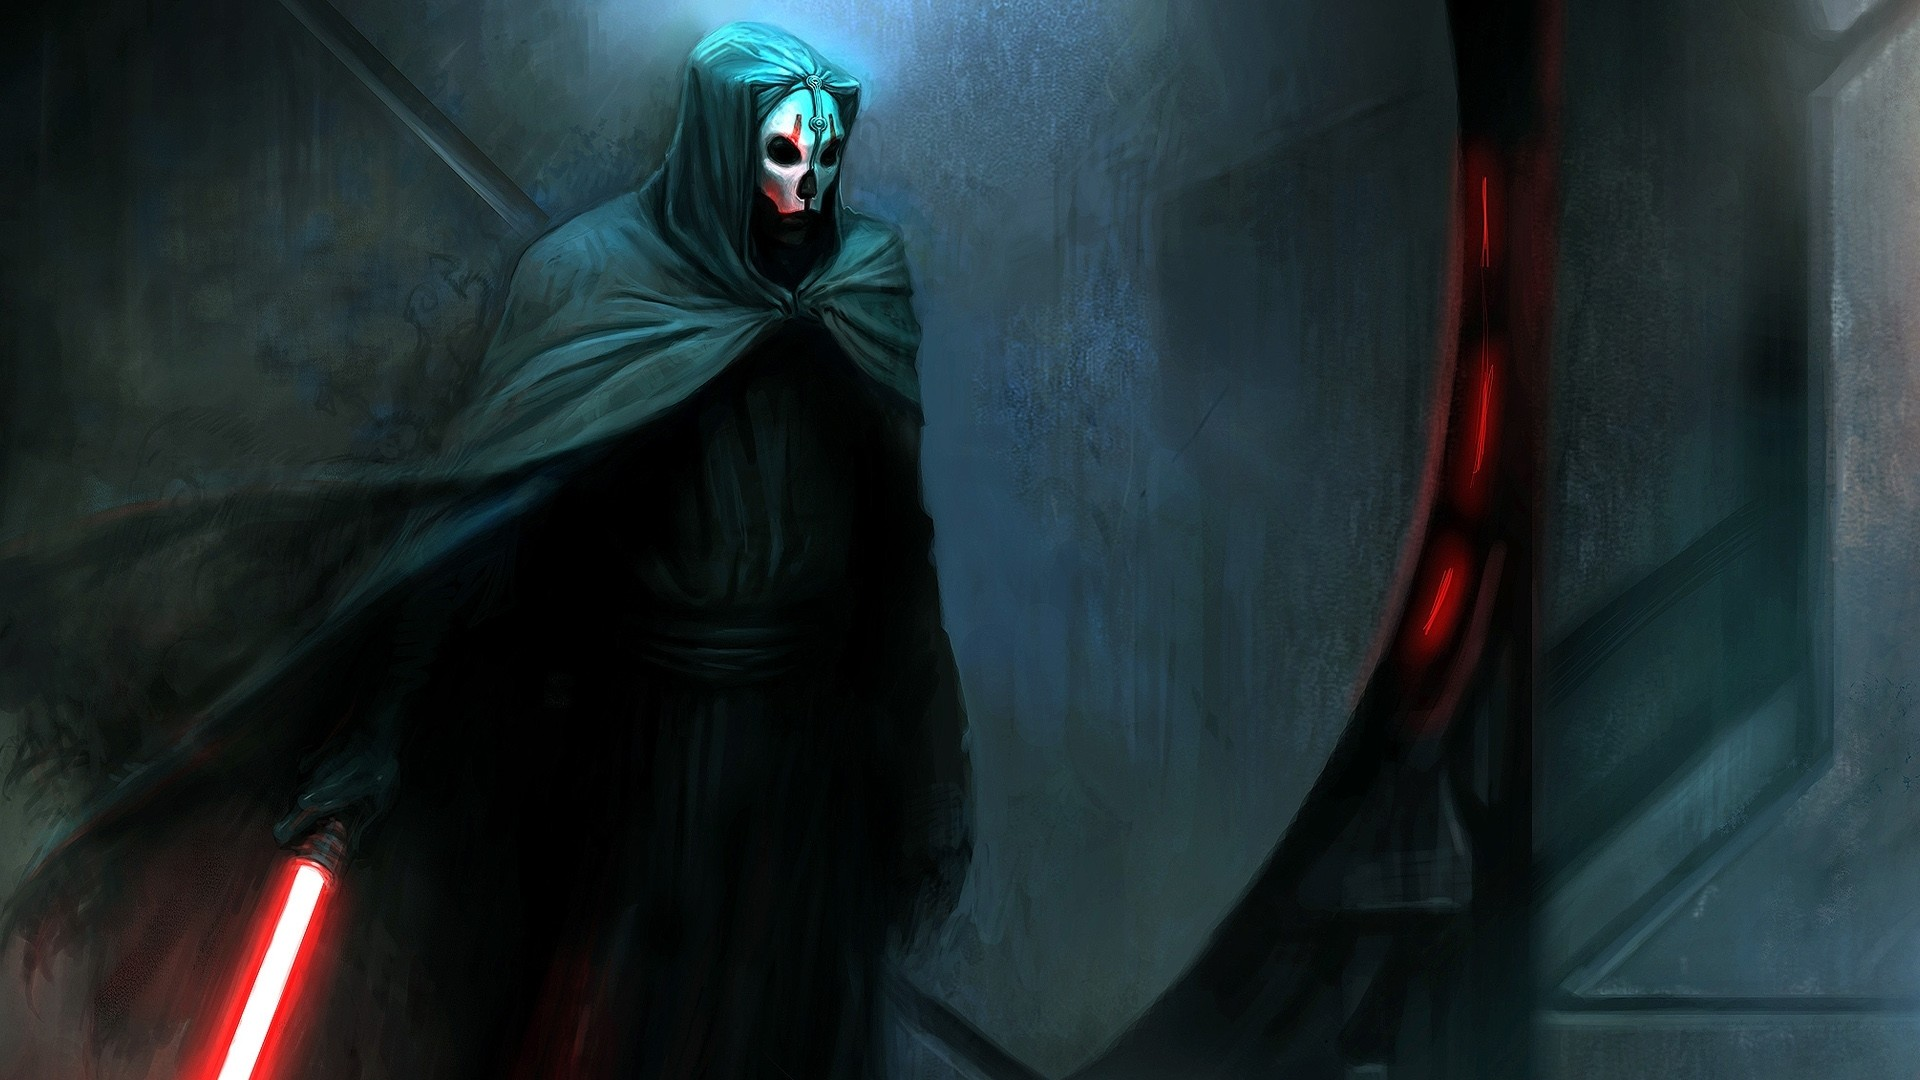 Res: 1920x1080, Title : star wars: knights of the old republic ii full hd wallpaper and.  Dimension : 1920 x 1080. File Type : JPG/JPEG